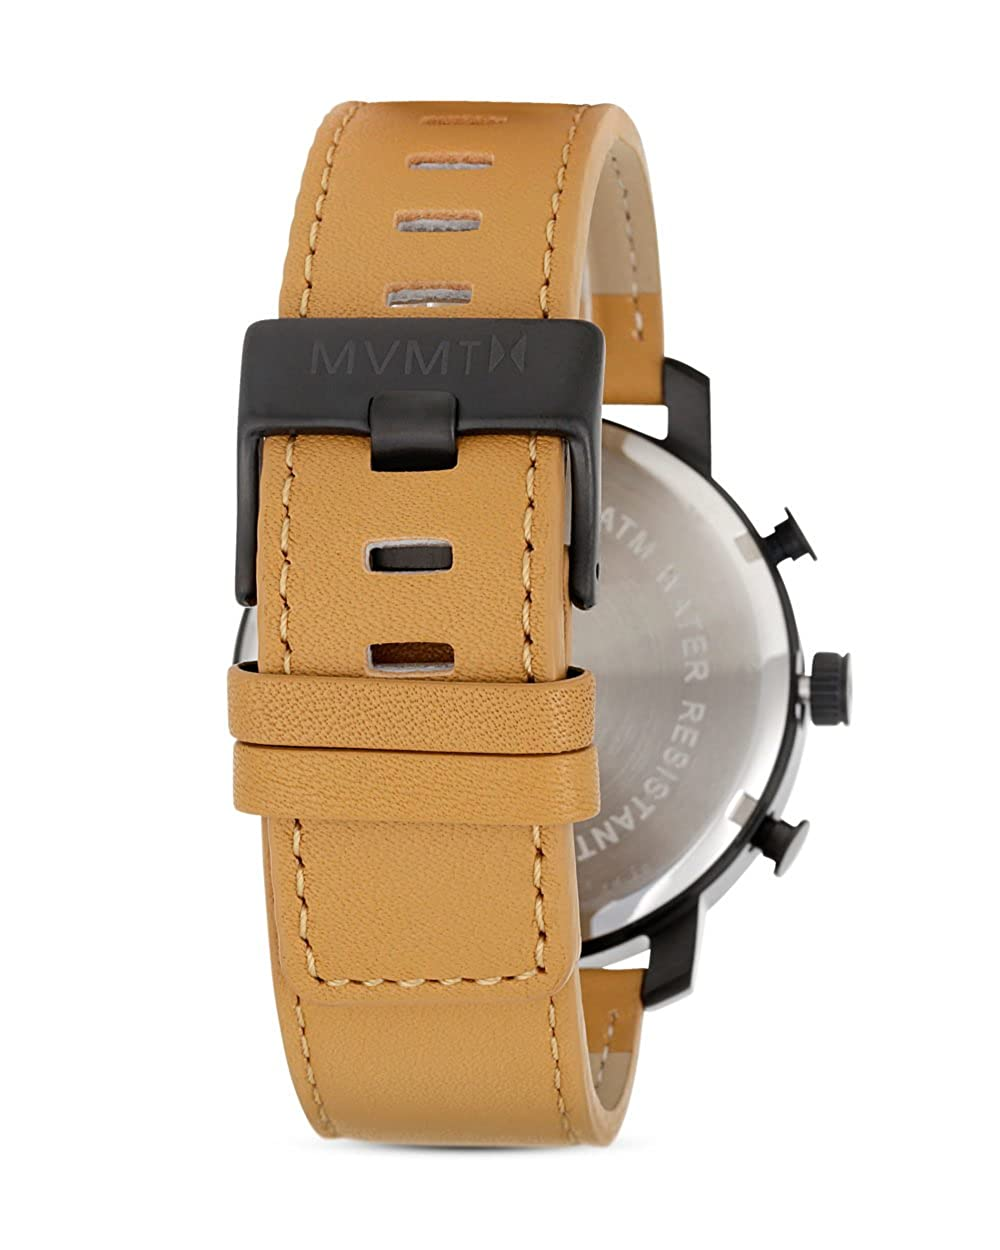 70f5a380430 MVMT Watch Classic Black Tan Leather  Amazon.co.uk  Watches